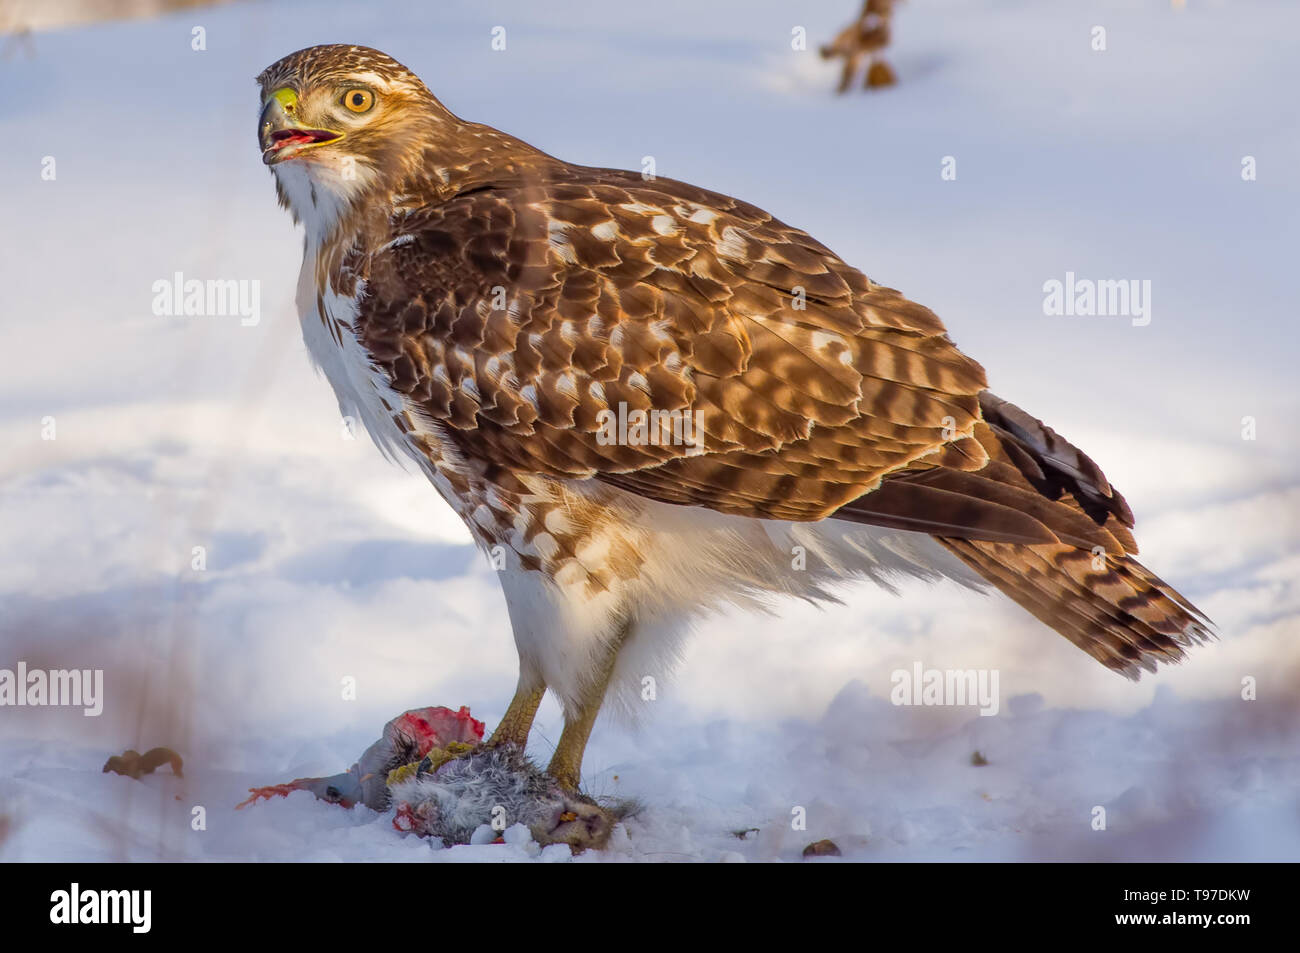 Red Tailed Hawk Eating Stock Photos & Red Tailed Hawk Eating Stock